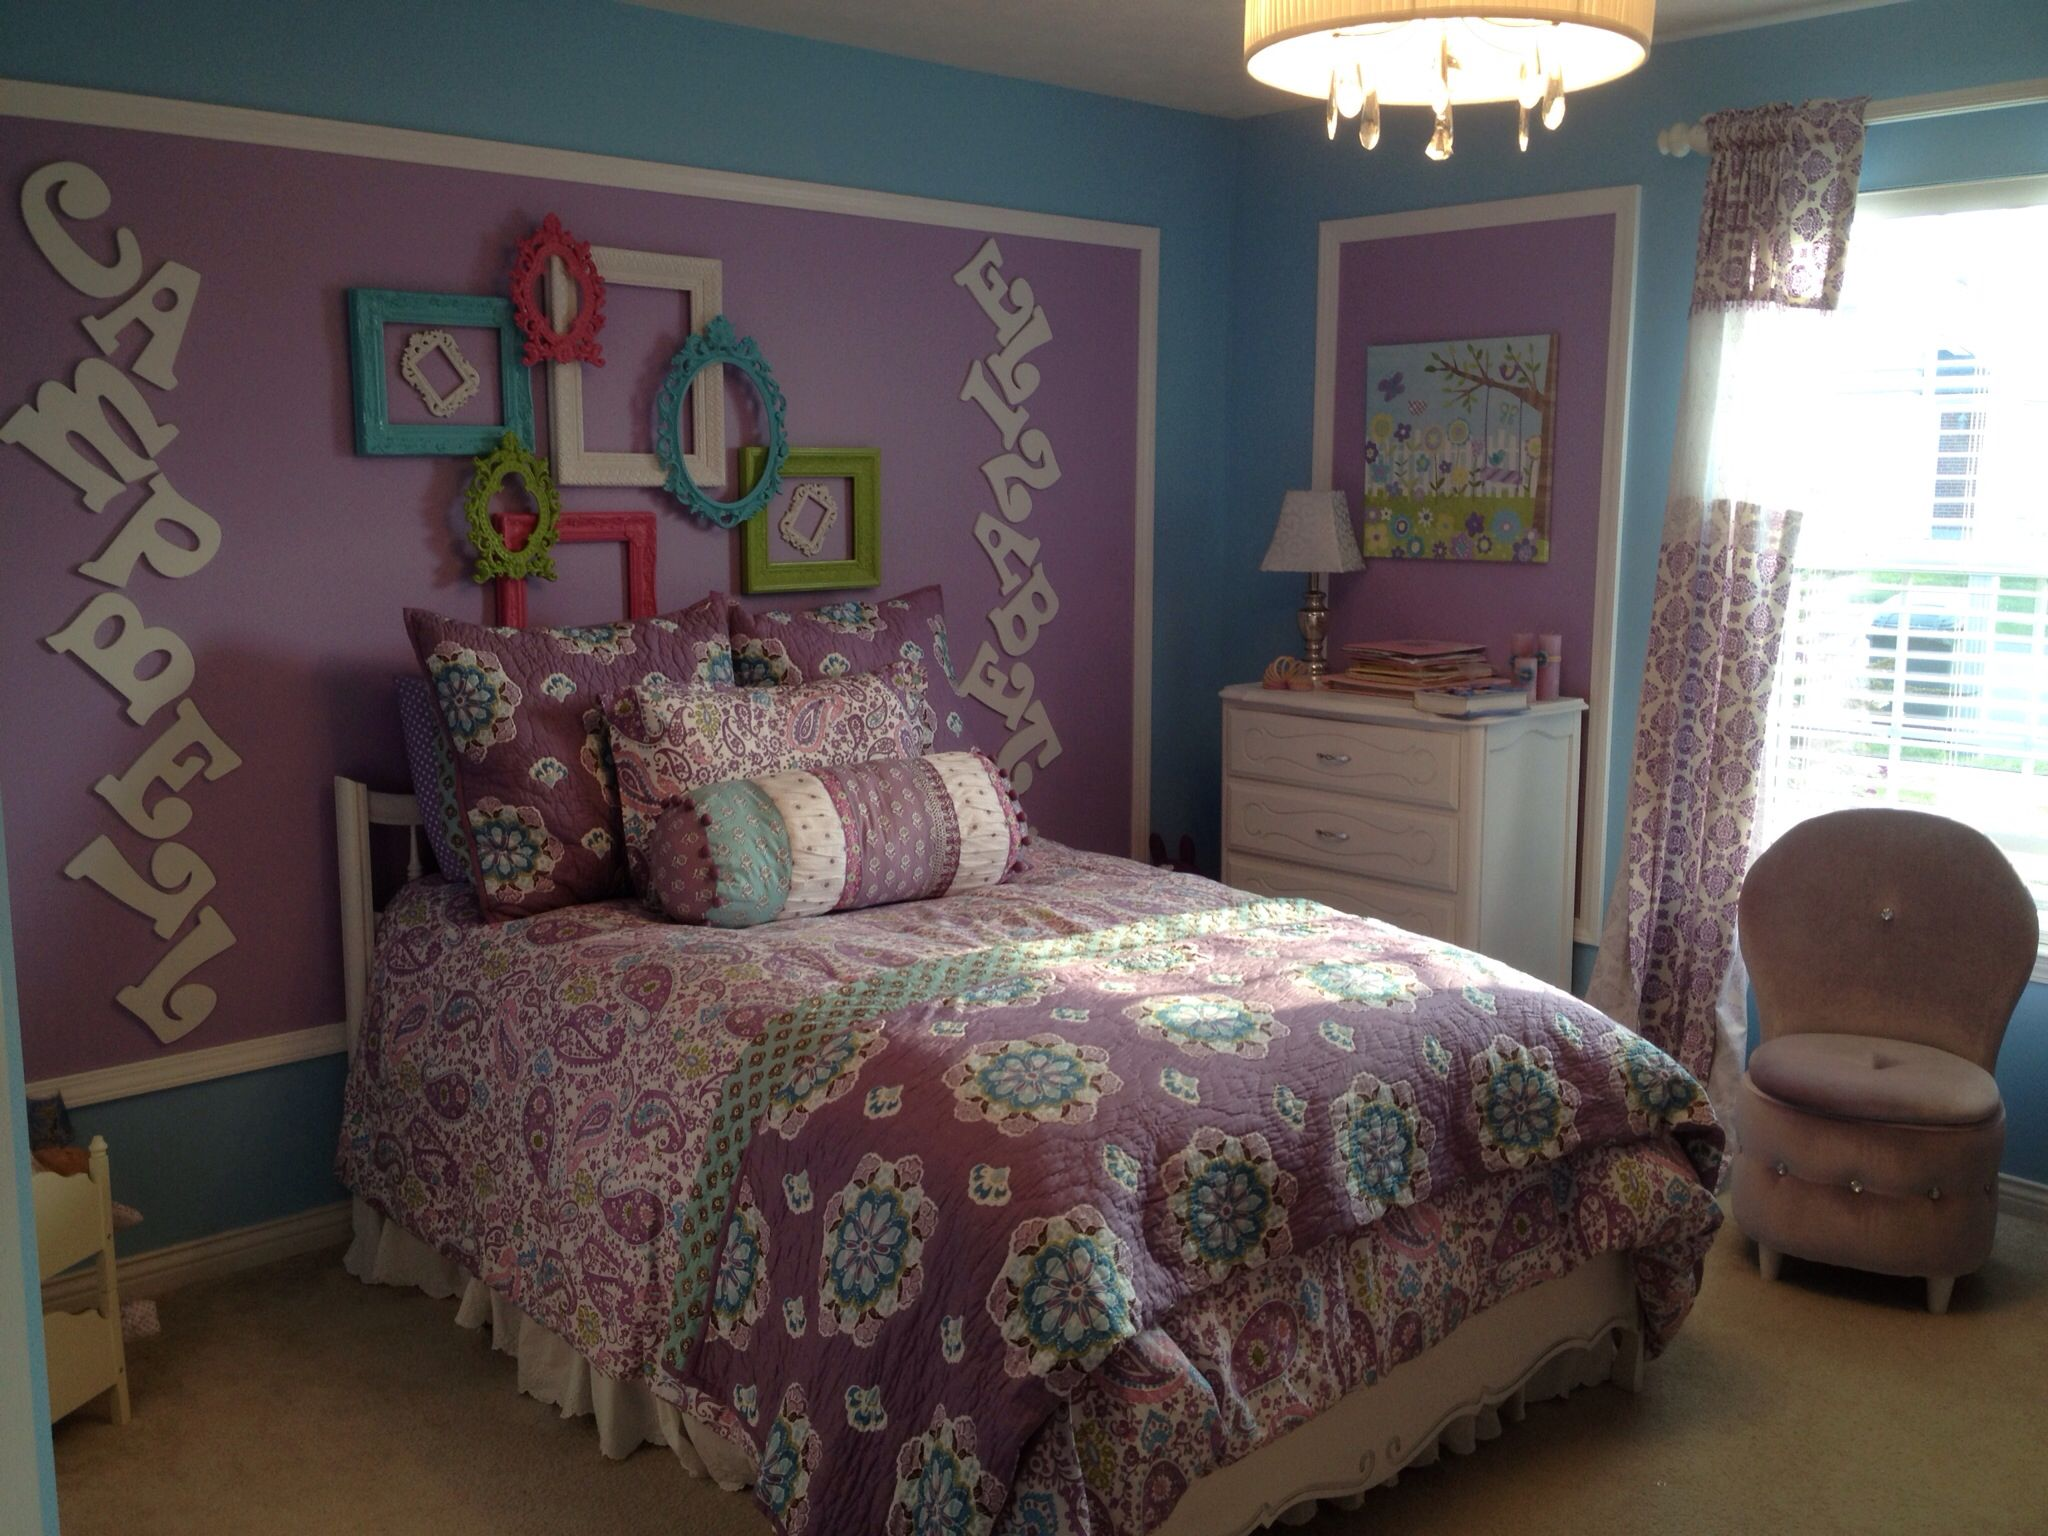 Pottery Barn Kids Bedding In 4 Year Old Girls Room So Fun